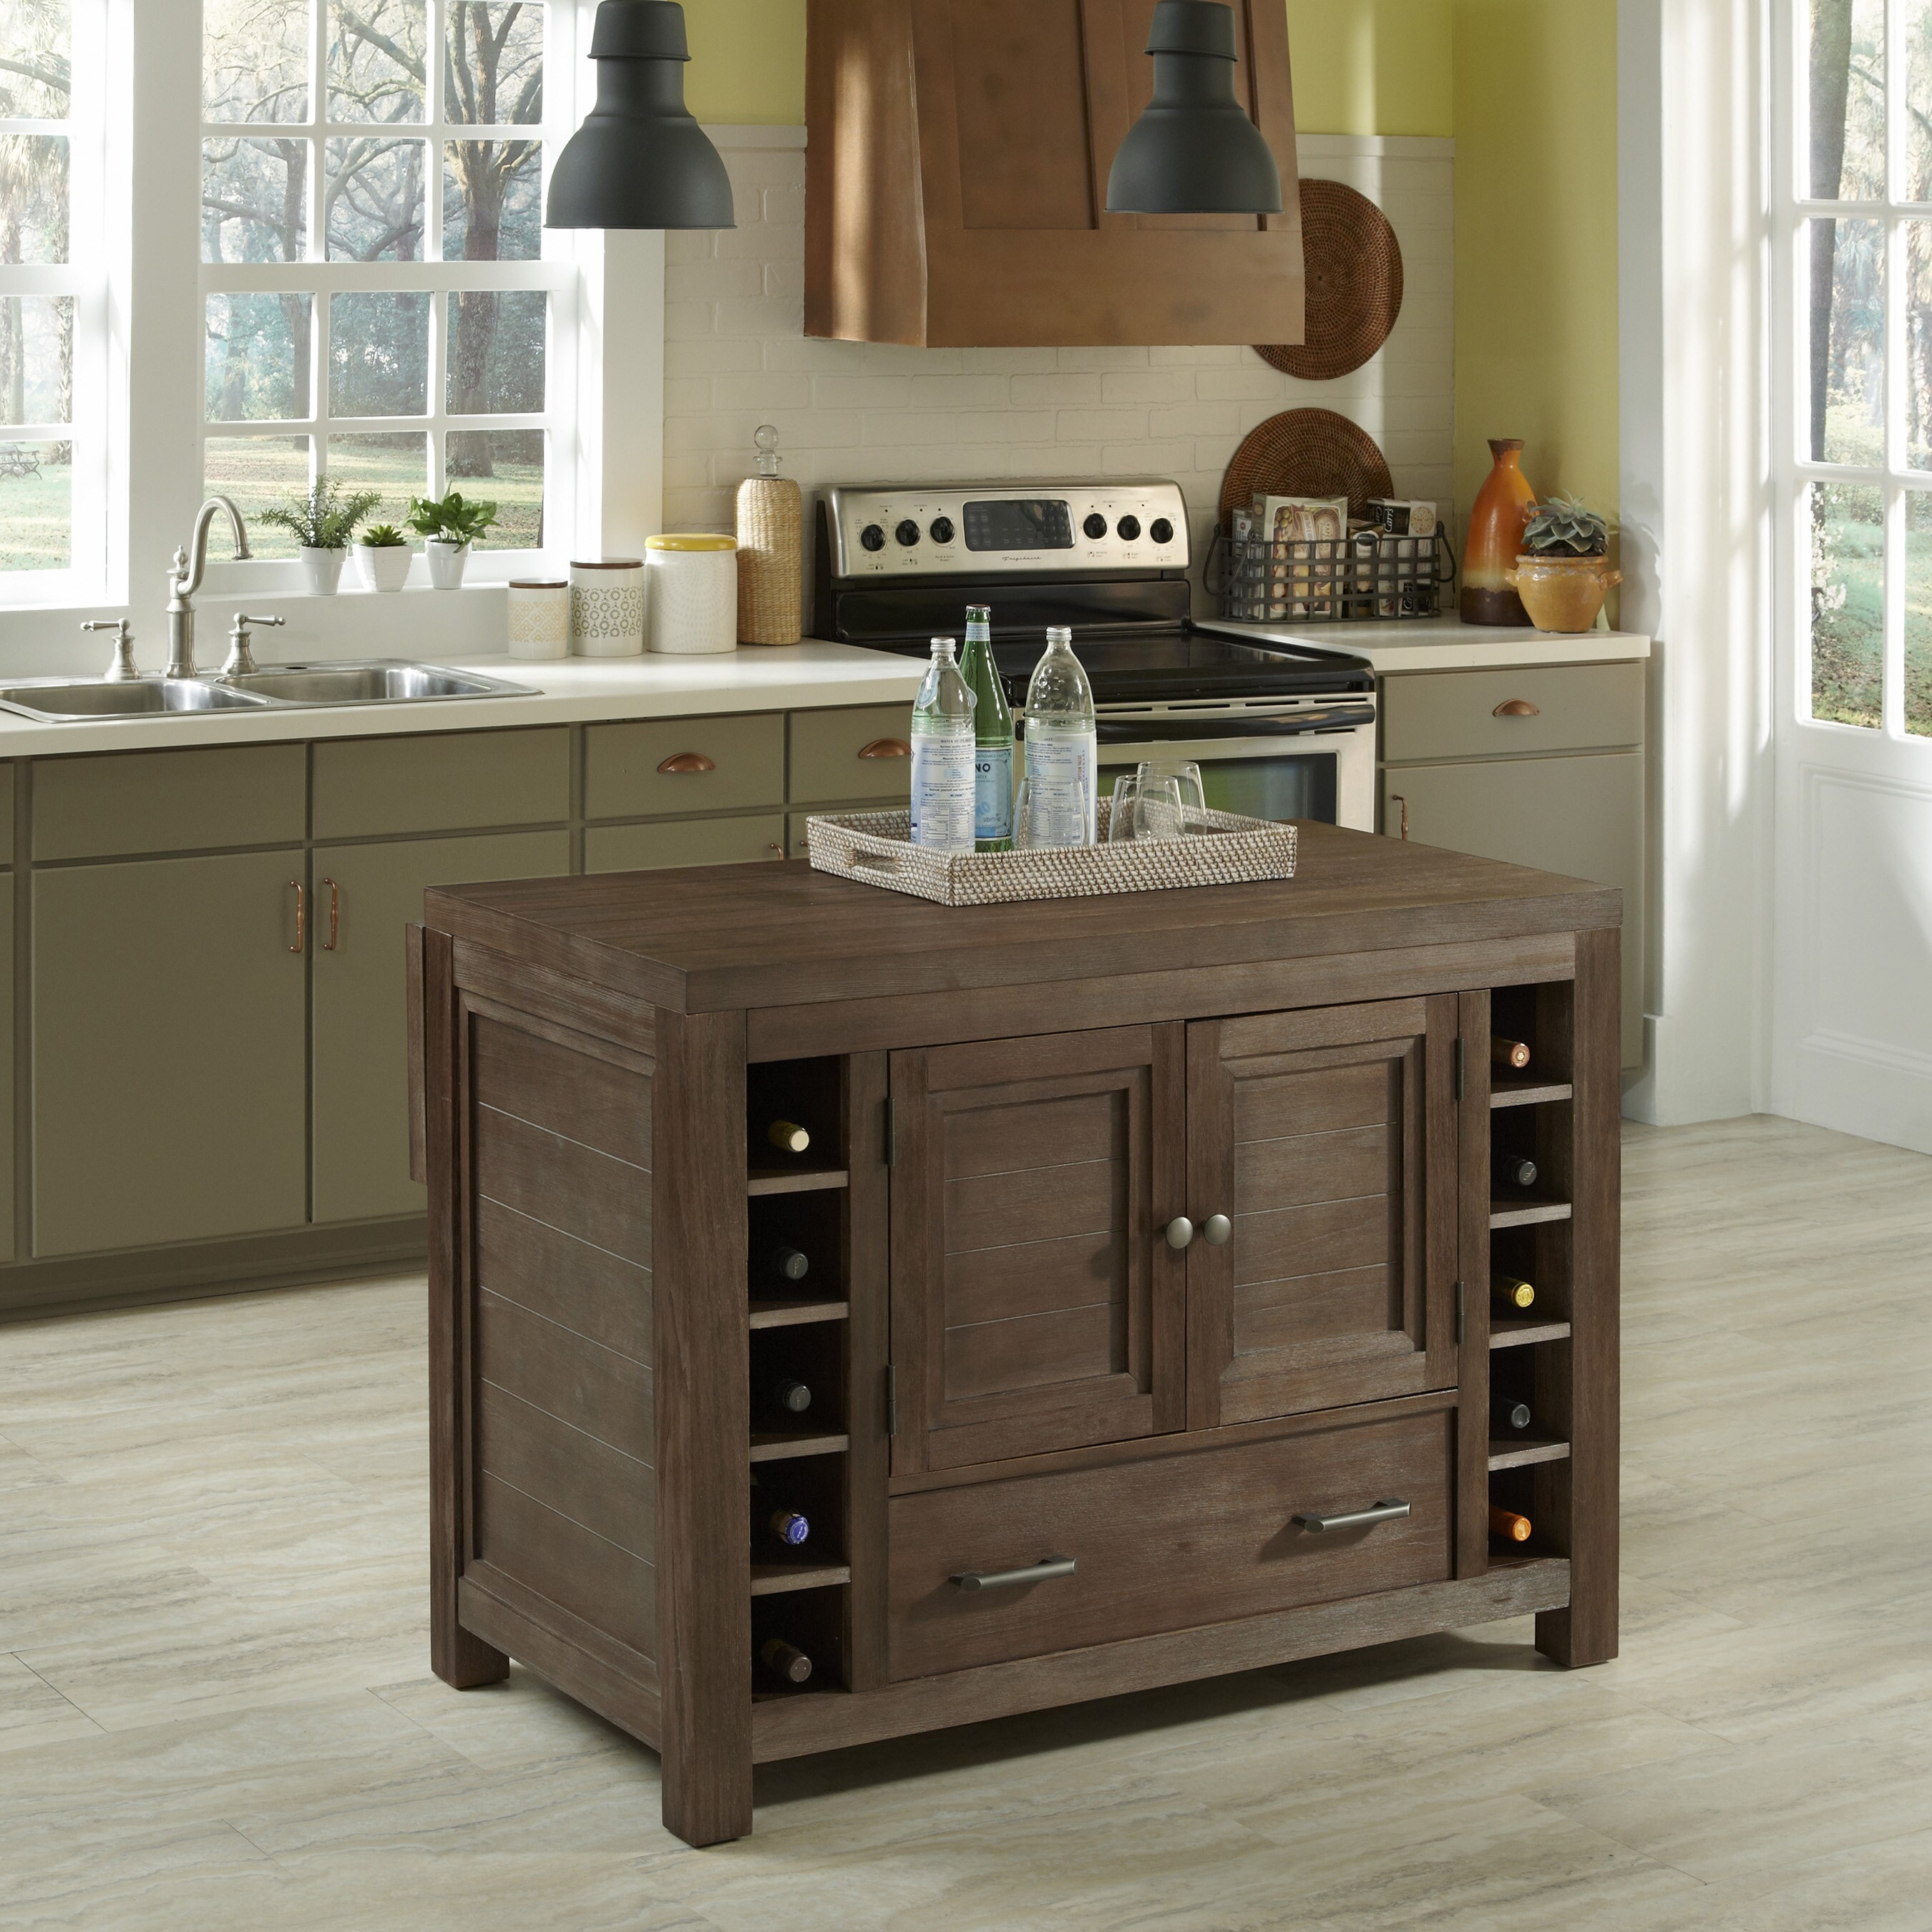 Rustic Kitchen Island For Sale: Shop The Gray Barn Firebranch Rustic Wood Kitchen Island